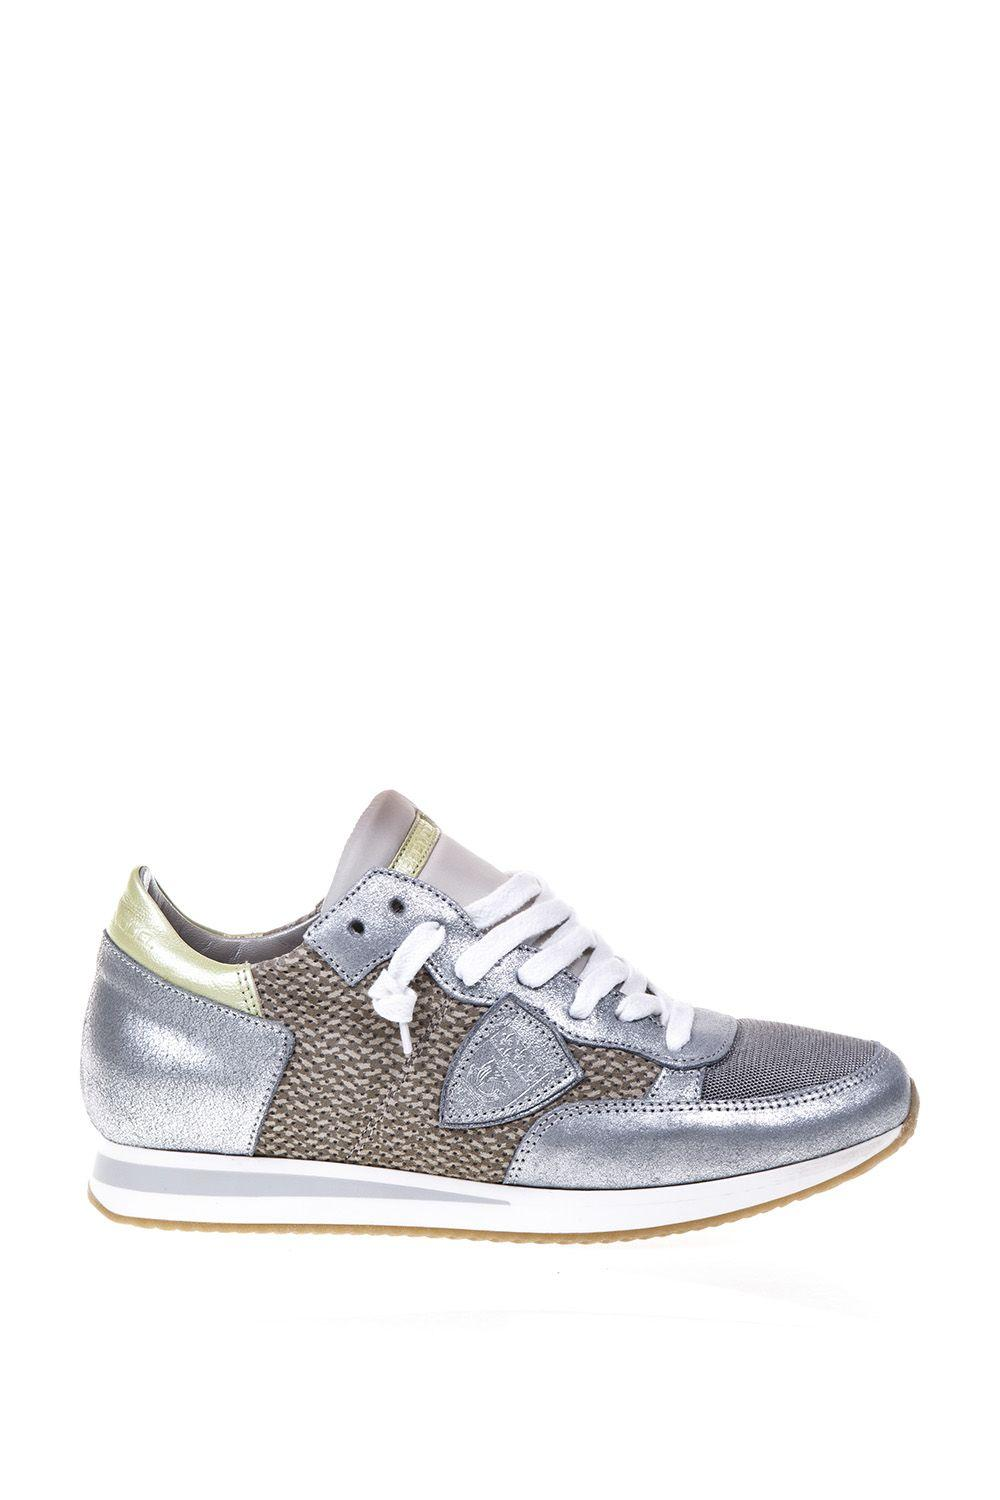 Philippe Model Nylon & Leather Sneakers In Sand-silver